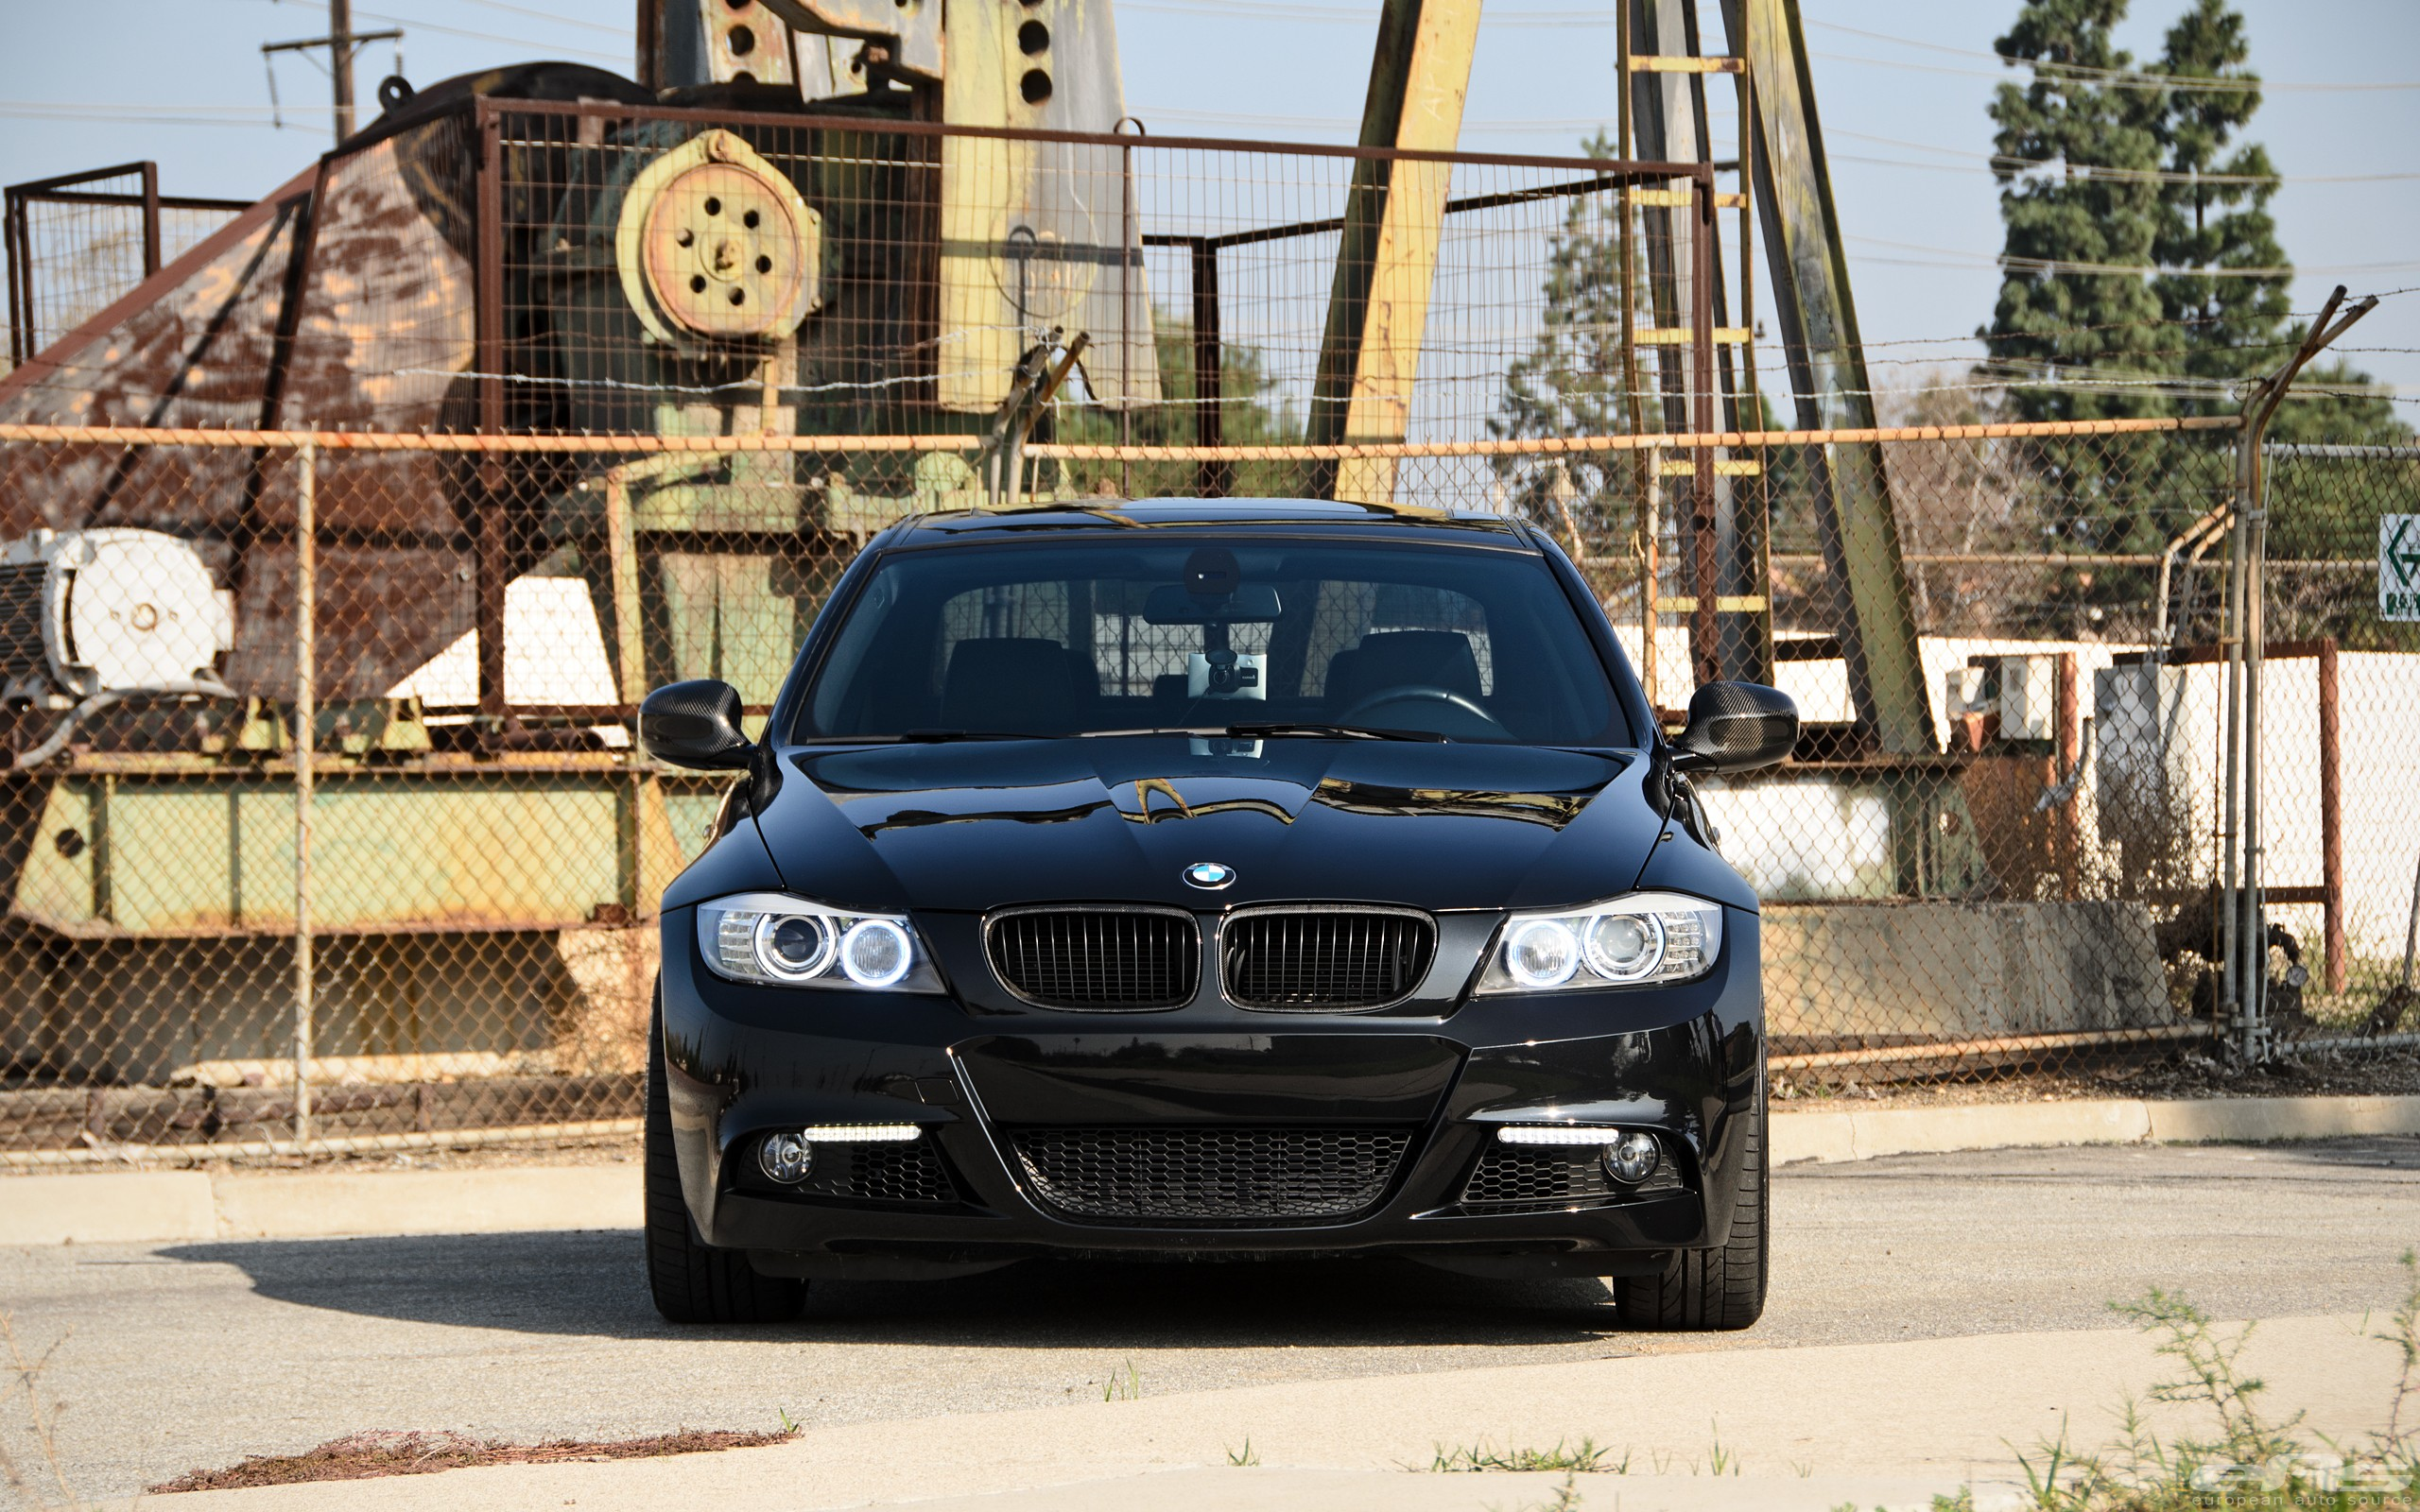 This BMW E90 335i Just Put Down 741 WHP and 624 lb-ft of